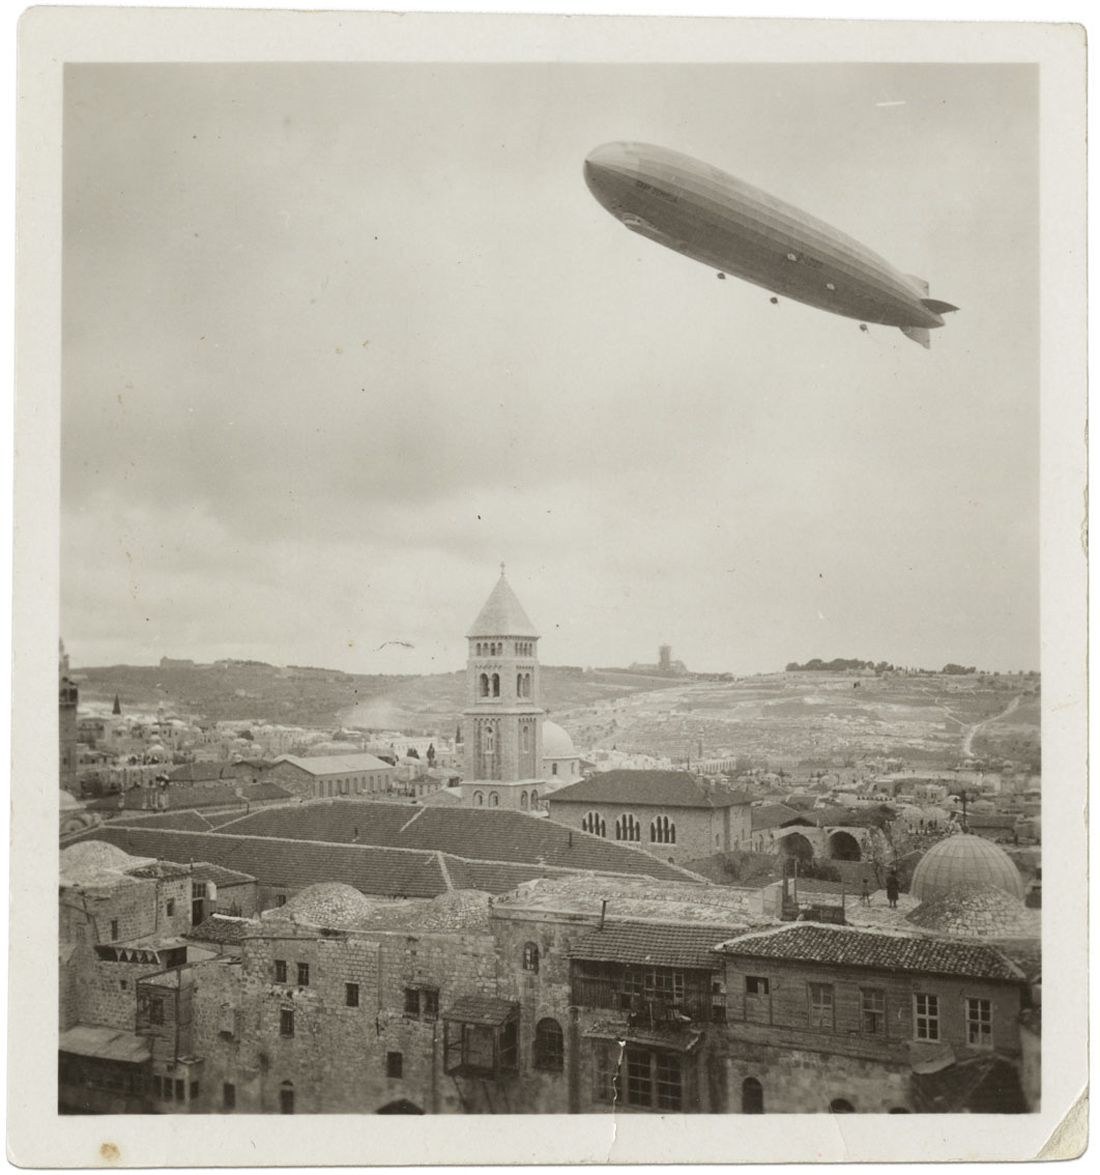 Hindenburg zeppelin over Jerusalem